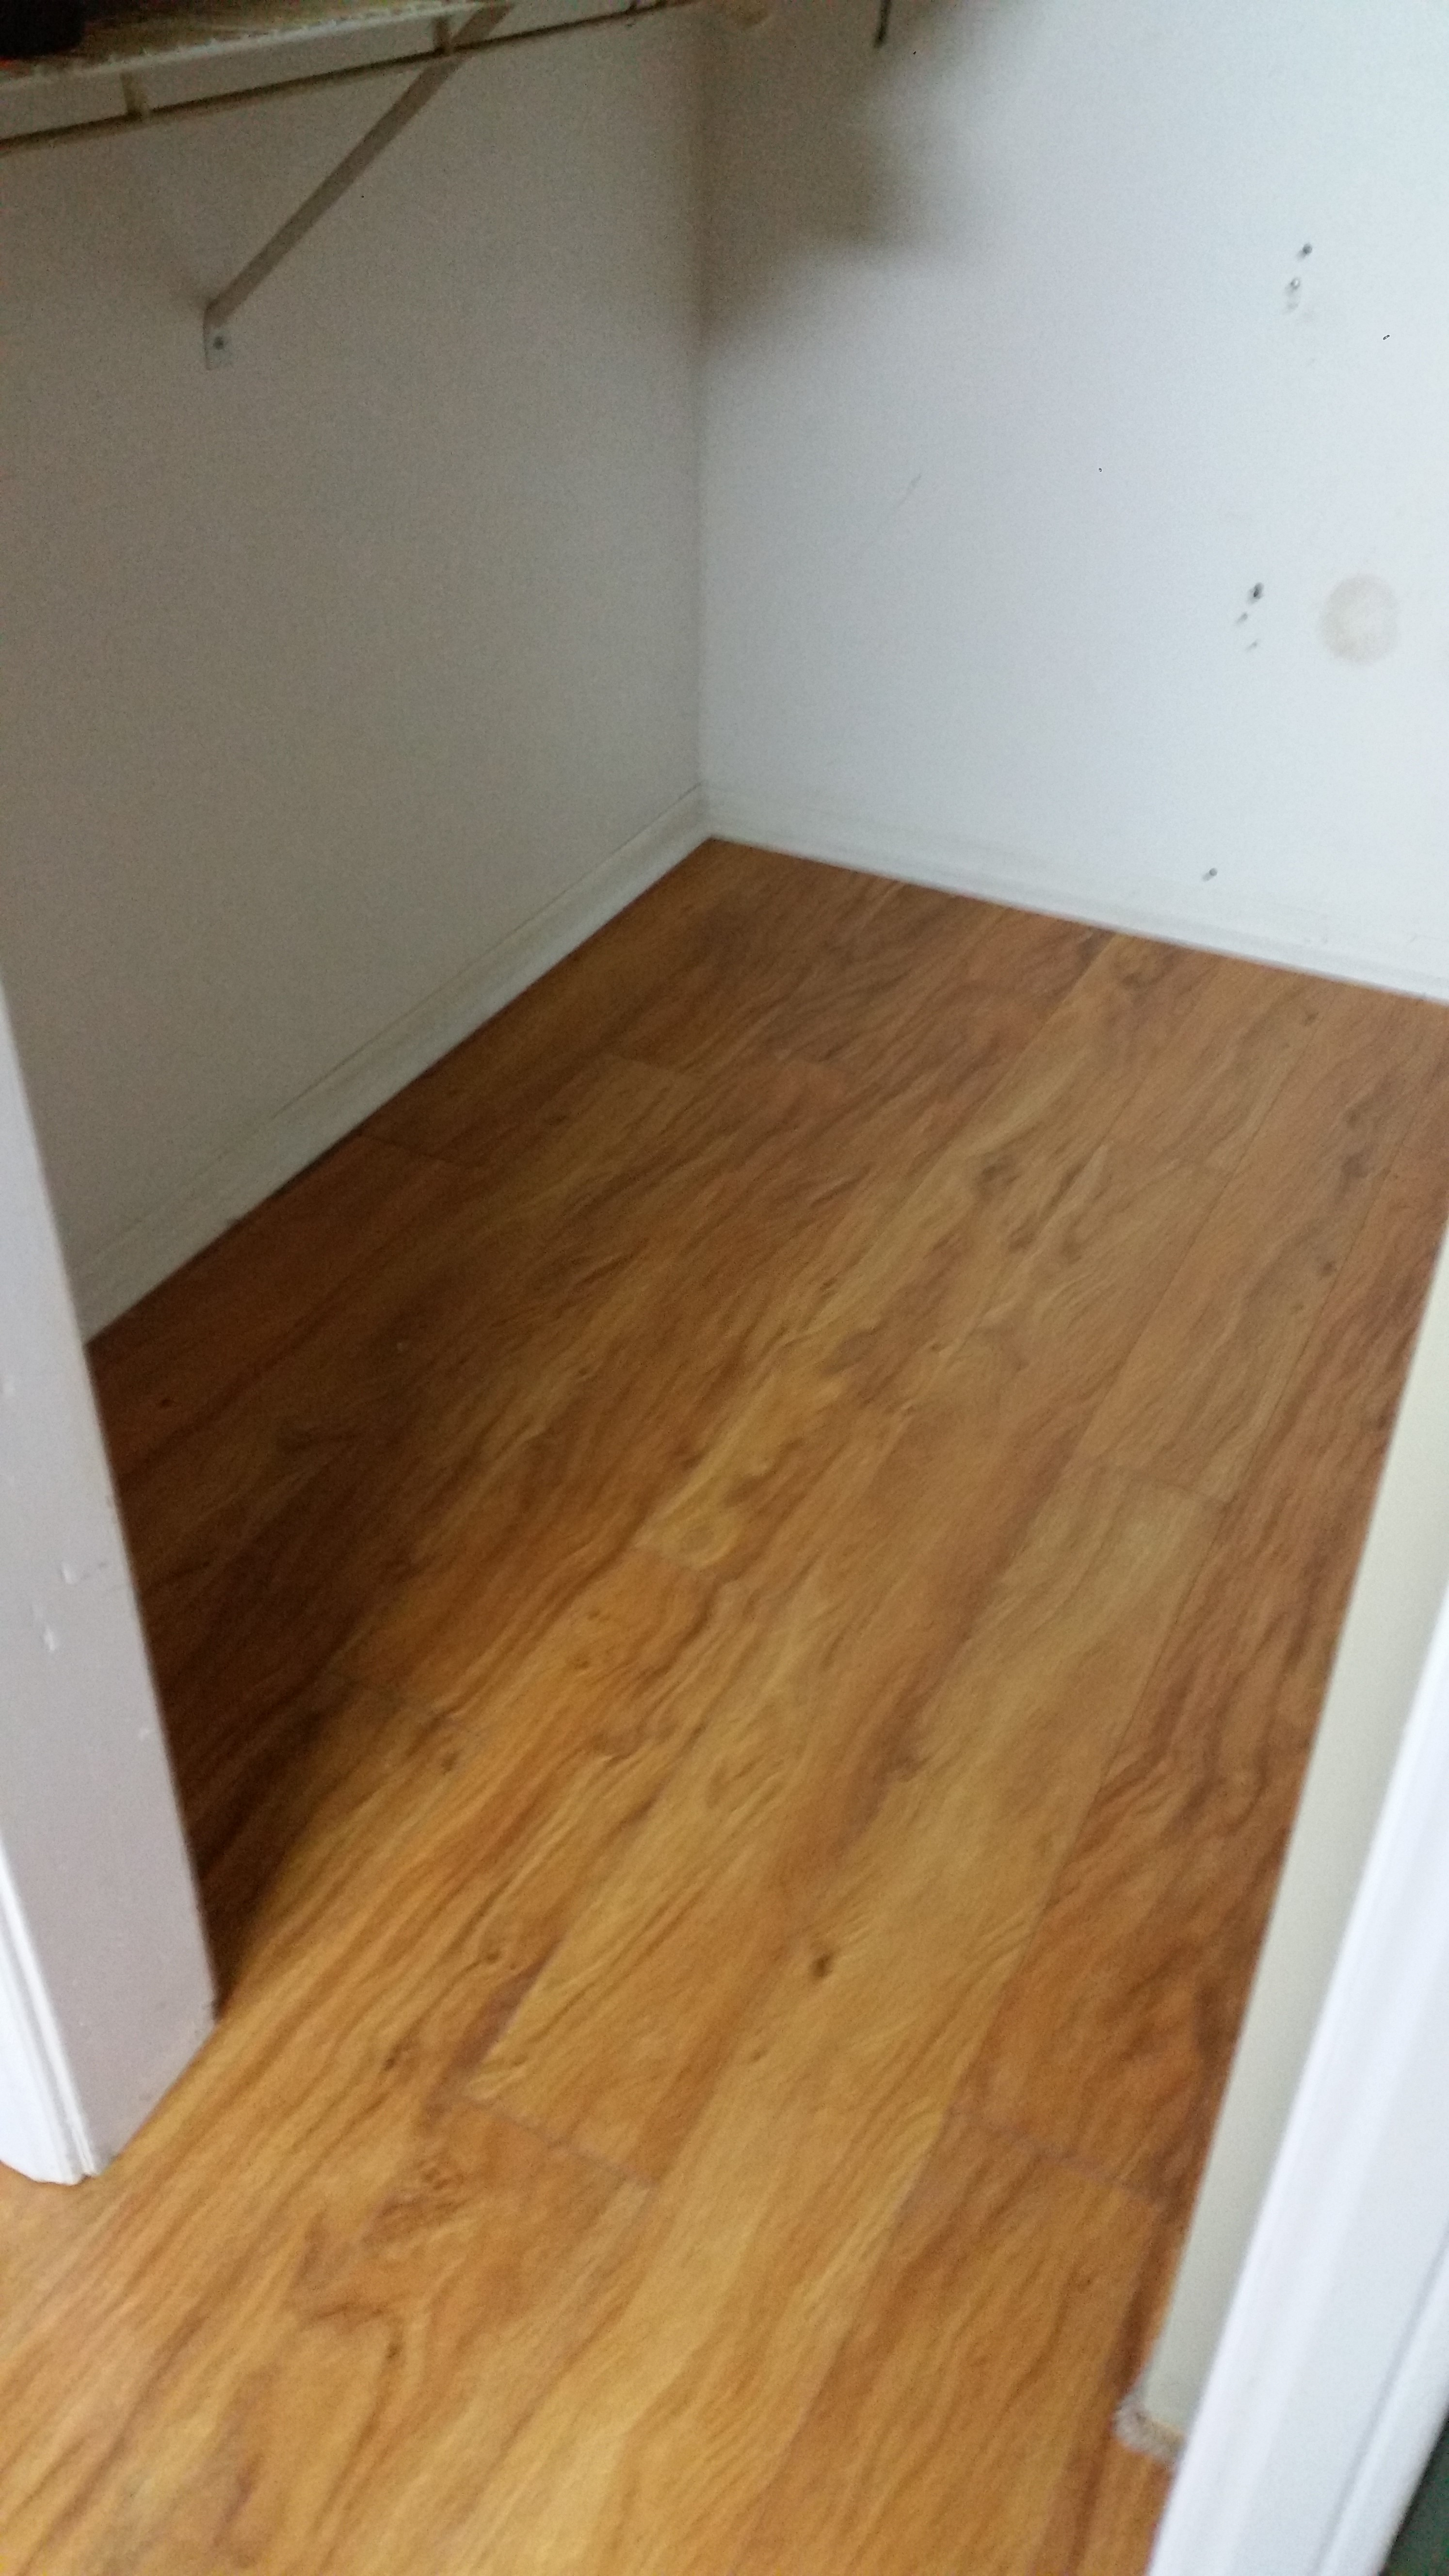 Laminate flooring installation jacksonville fl gurus floor for Hardwood floors jacksonville fl